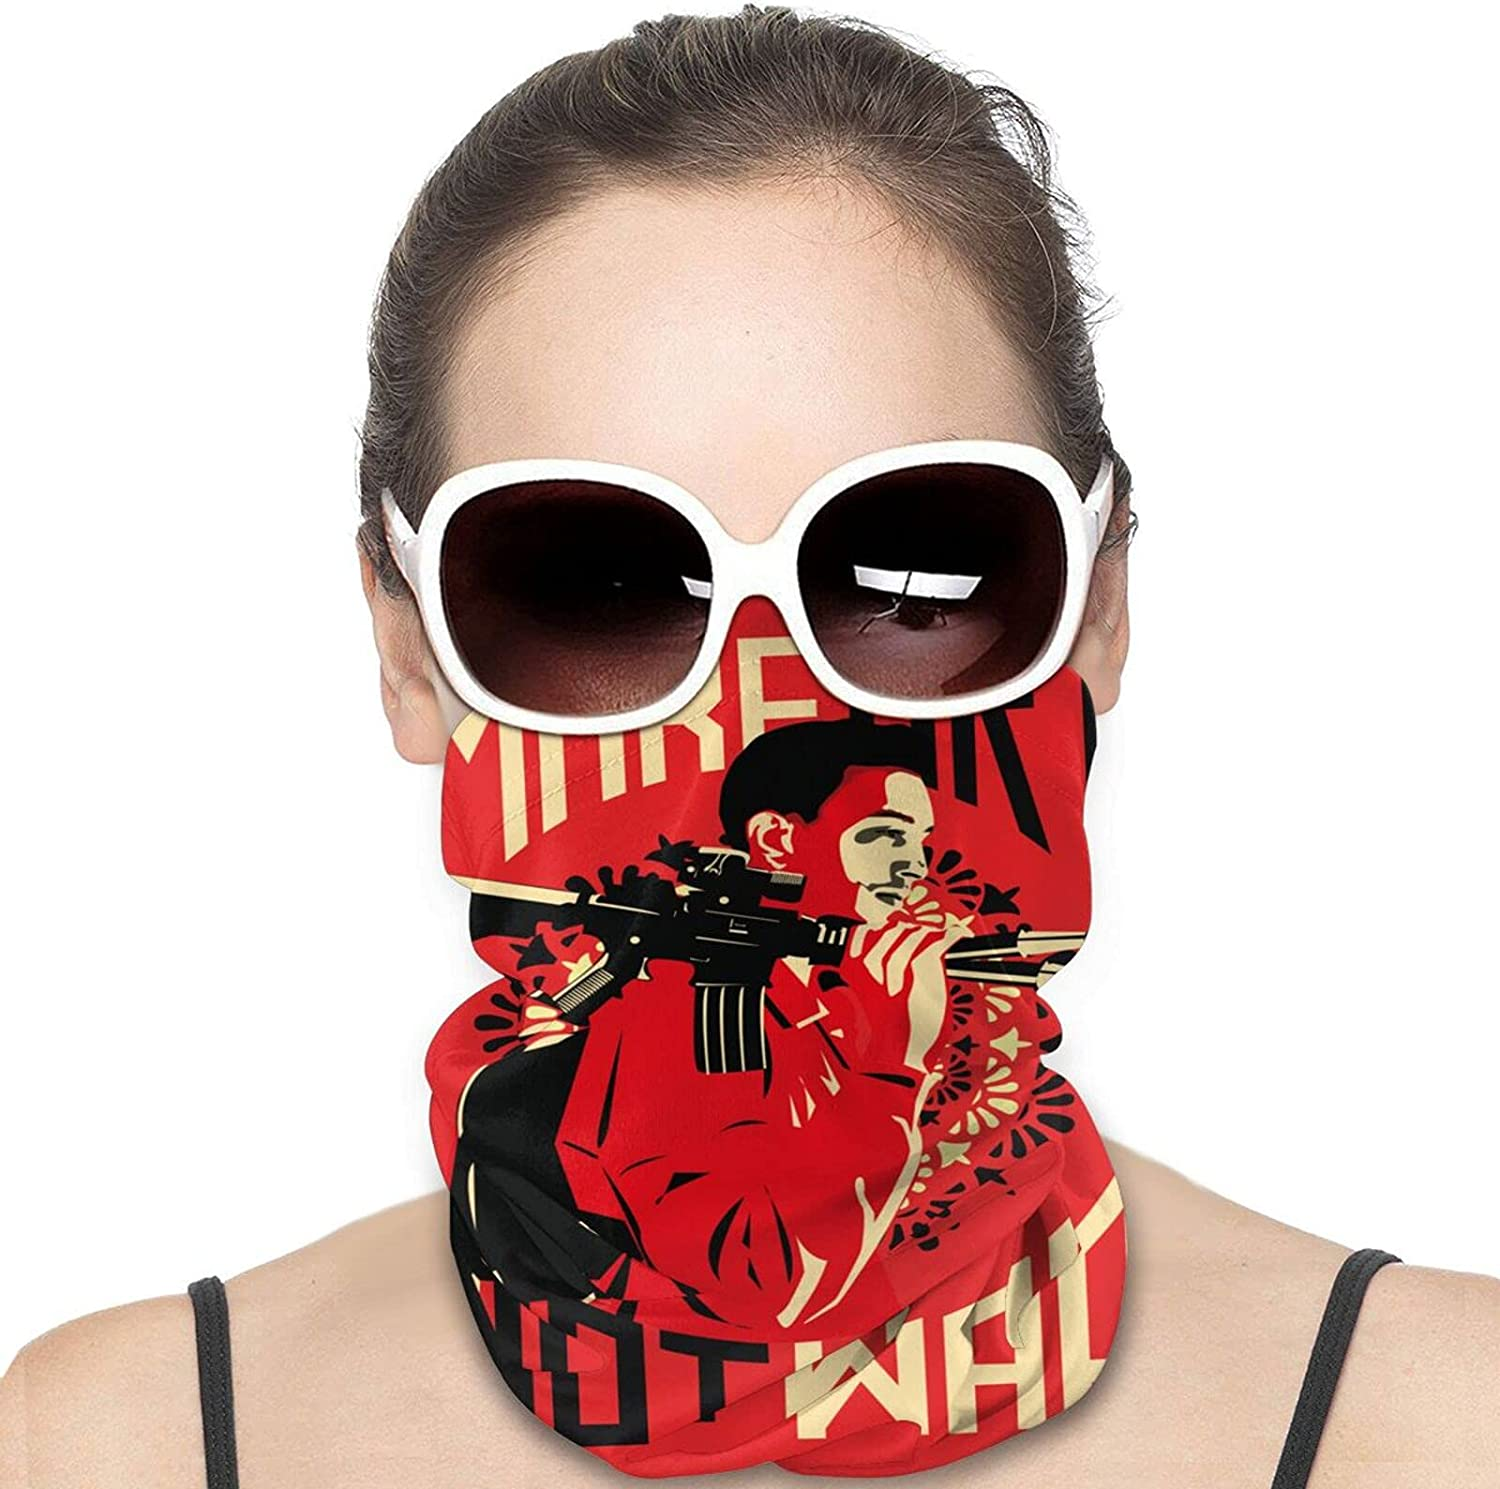 Make Art Not War Round Neck Gaiter Bandnas Face Cover Uv Protection Prevent bask in Ice Scarf Headbands Perfect for Motorcycle Cycling Running Festival Raves Outdoors